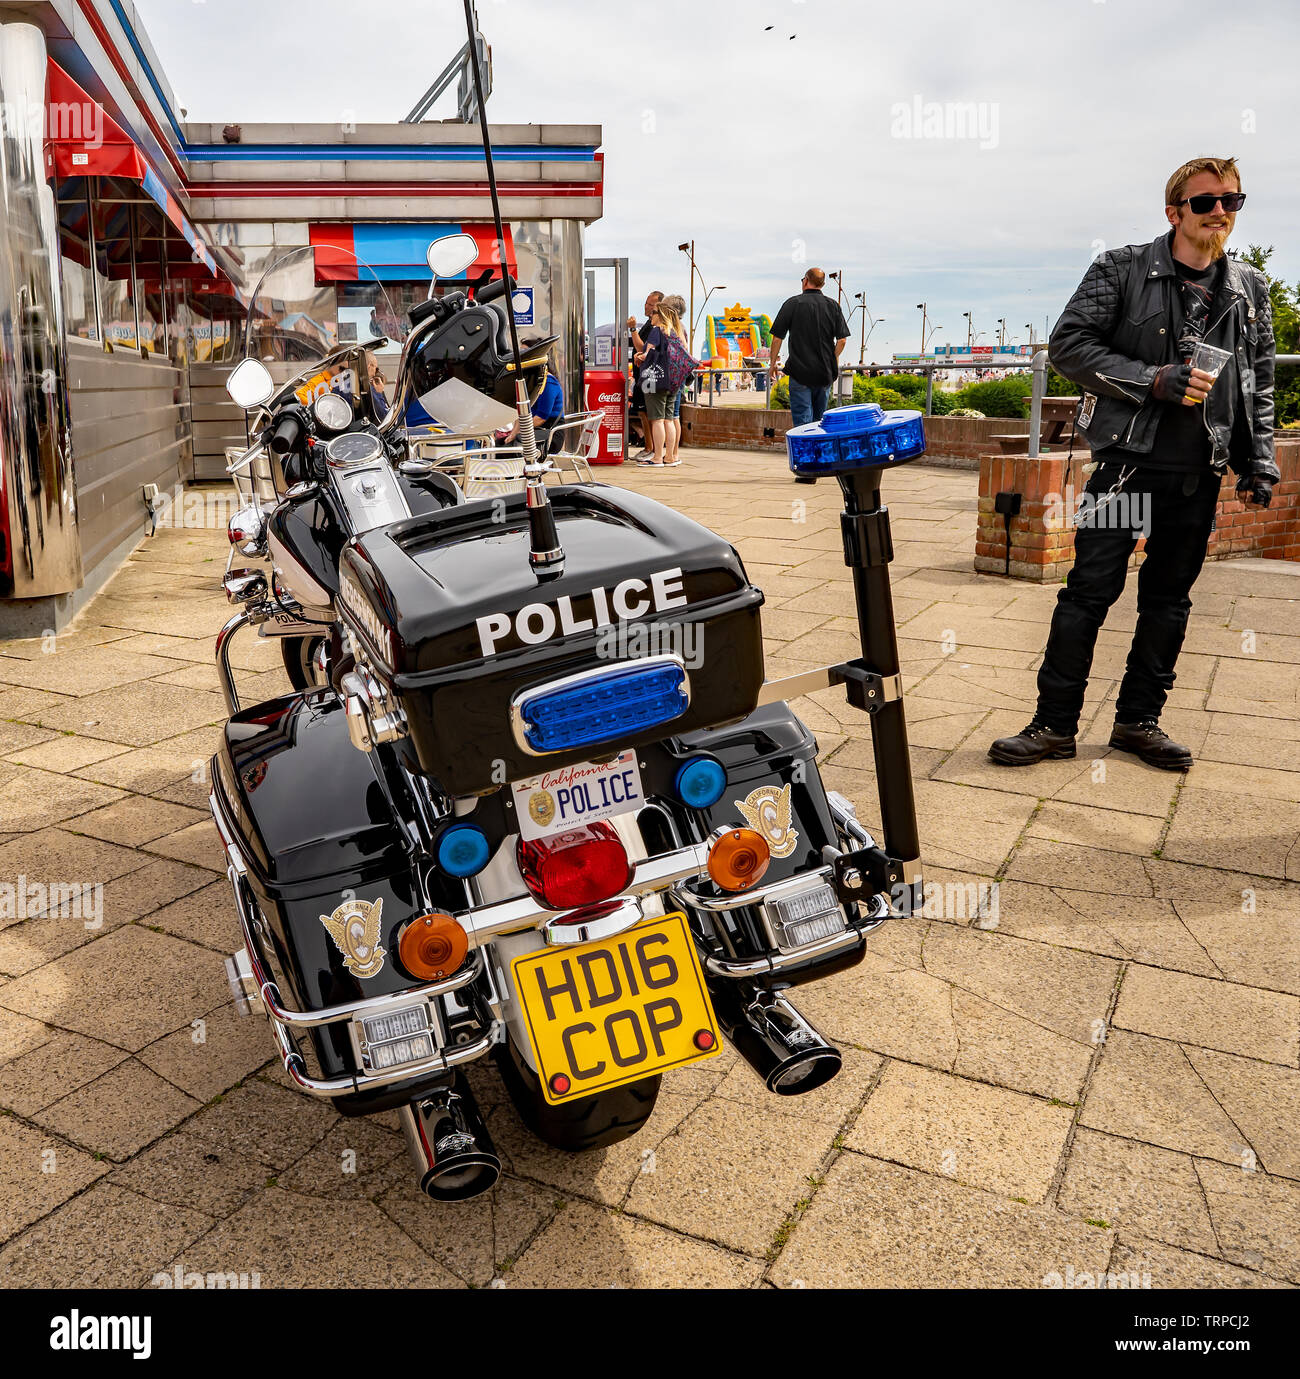 Harley Davidson customized to look like a replica US police motorcycle parked outside the American diner in the seaside town of Great Yarmouth - Stock Image